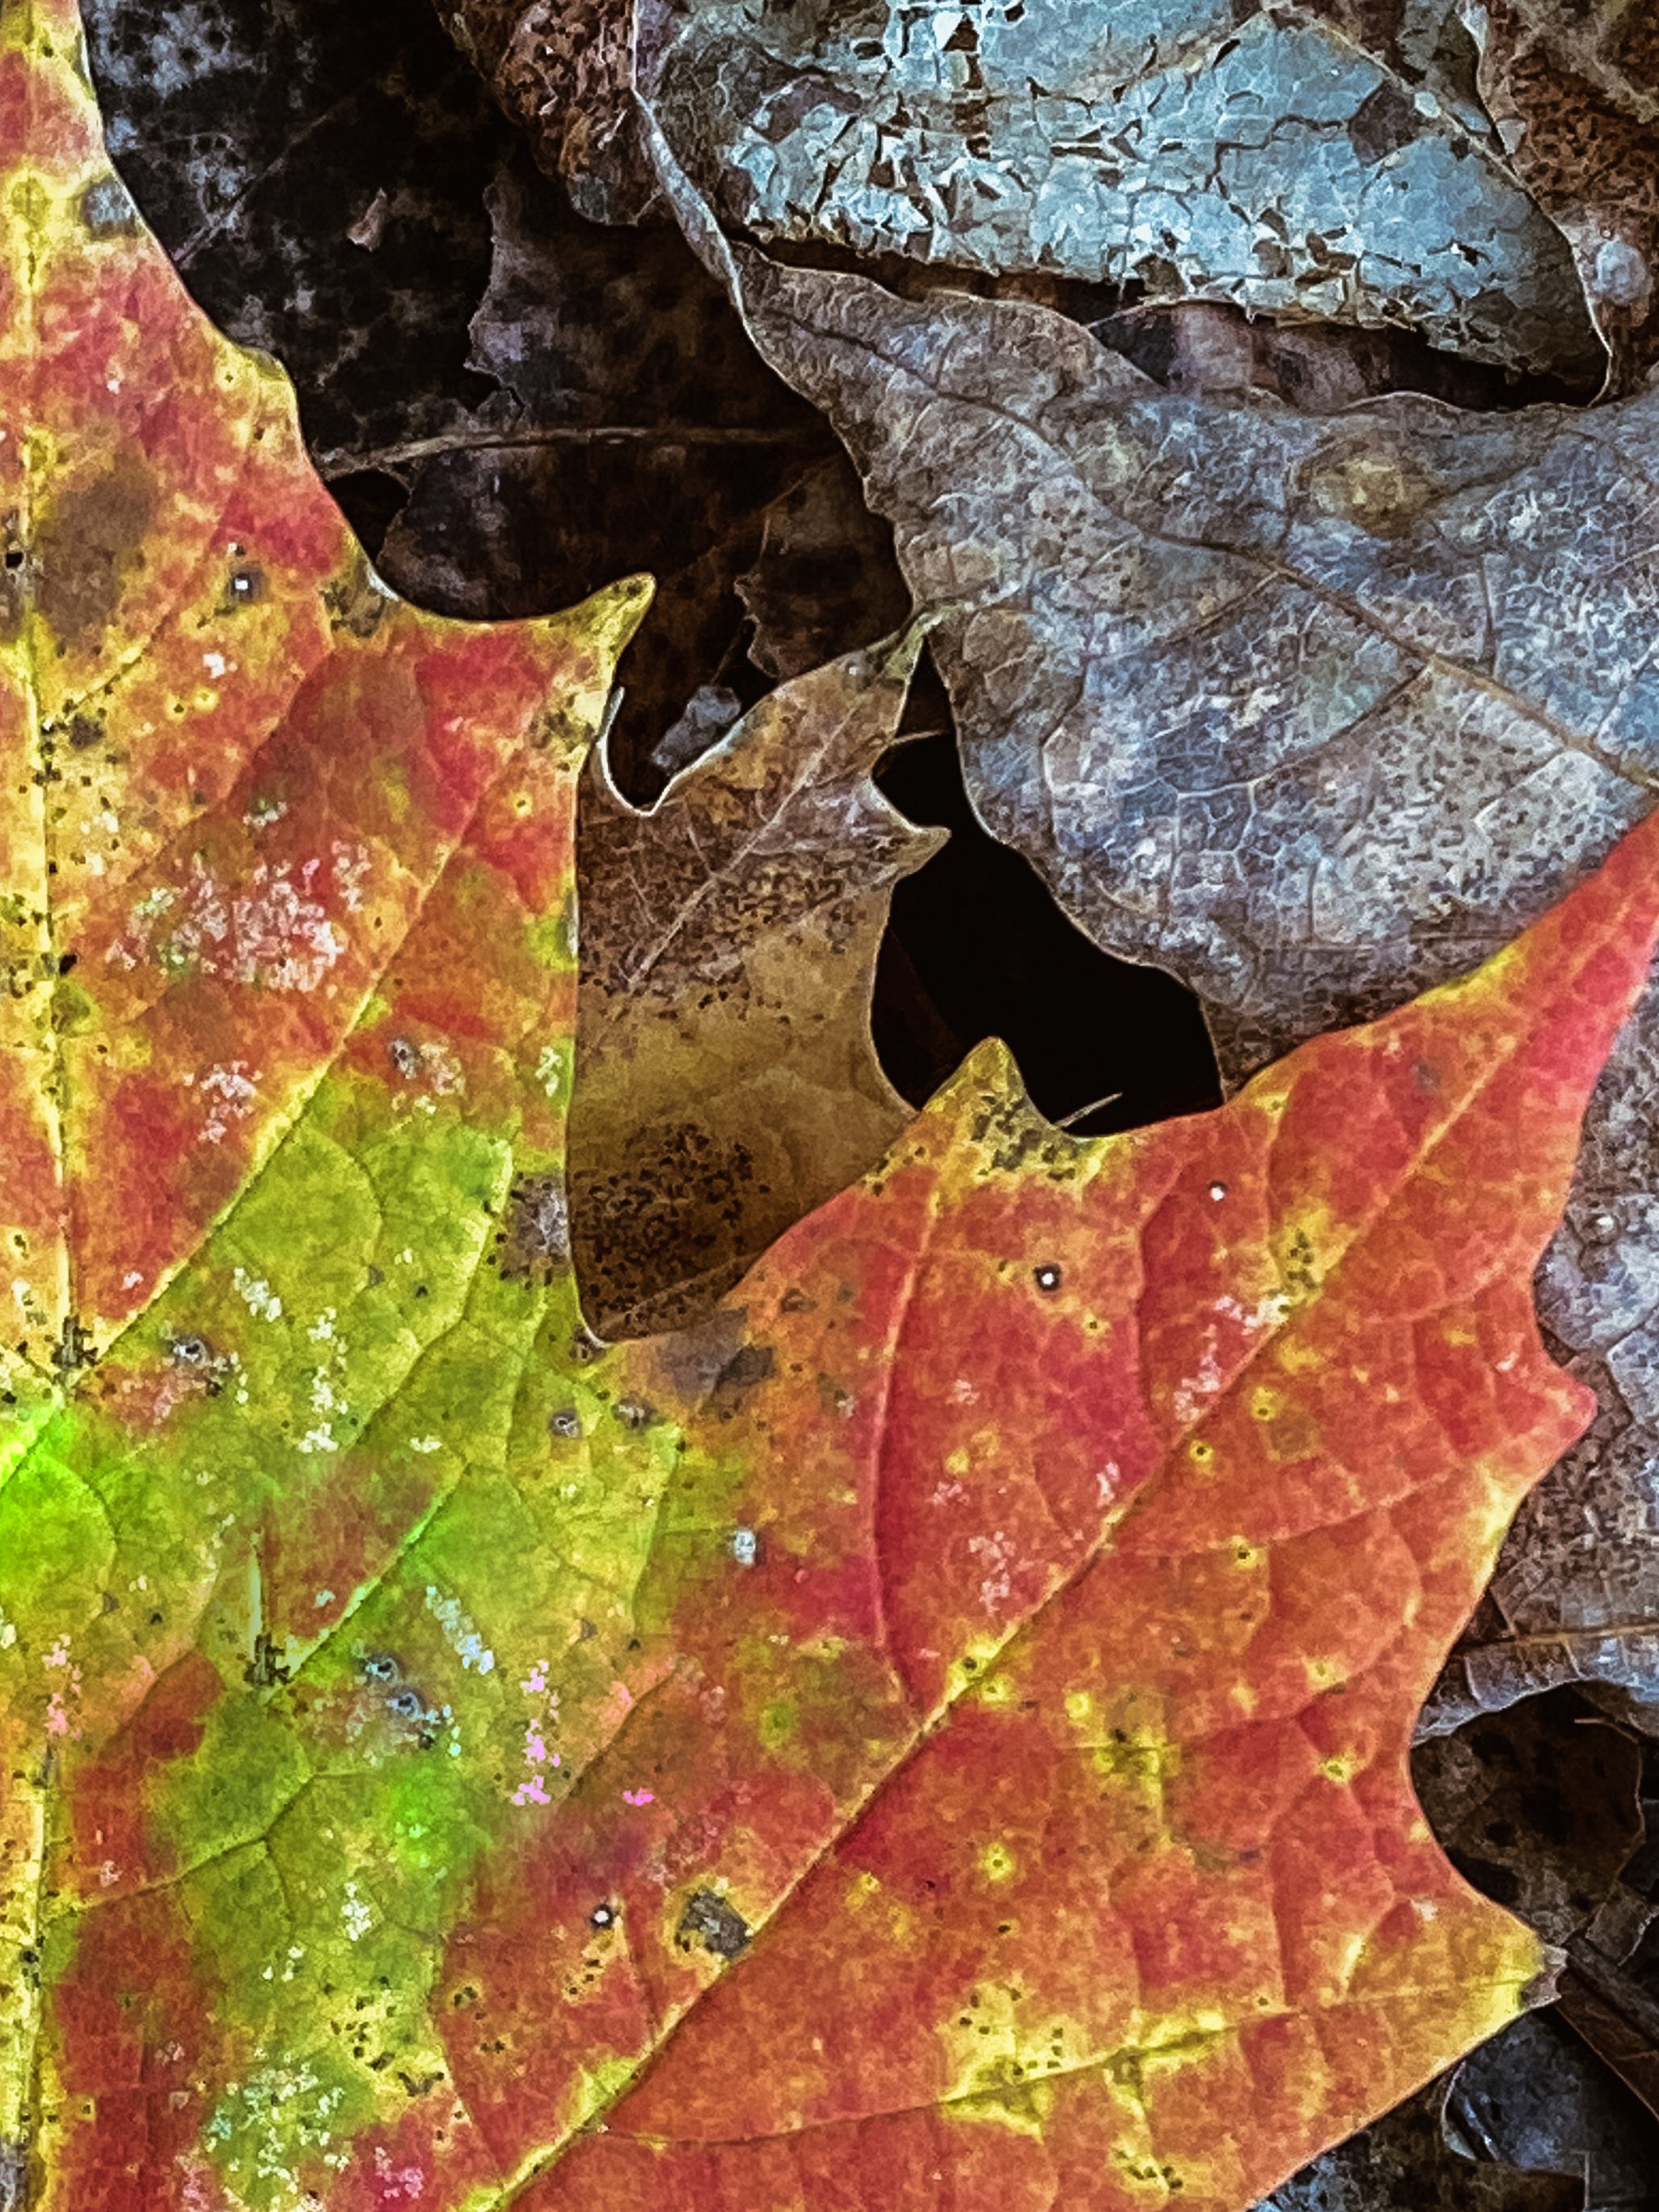 Fall transition - A leaf's texture becomes more prominent in the Fall when its nutrient phase changes.